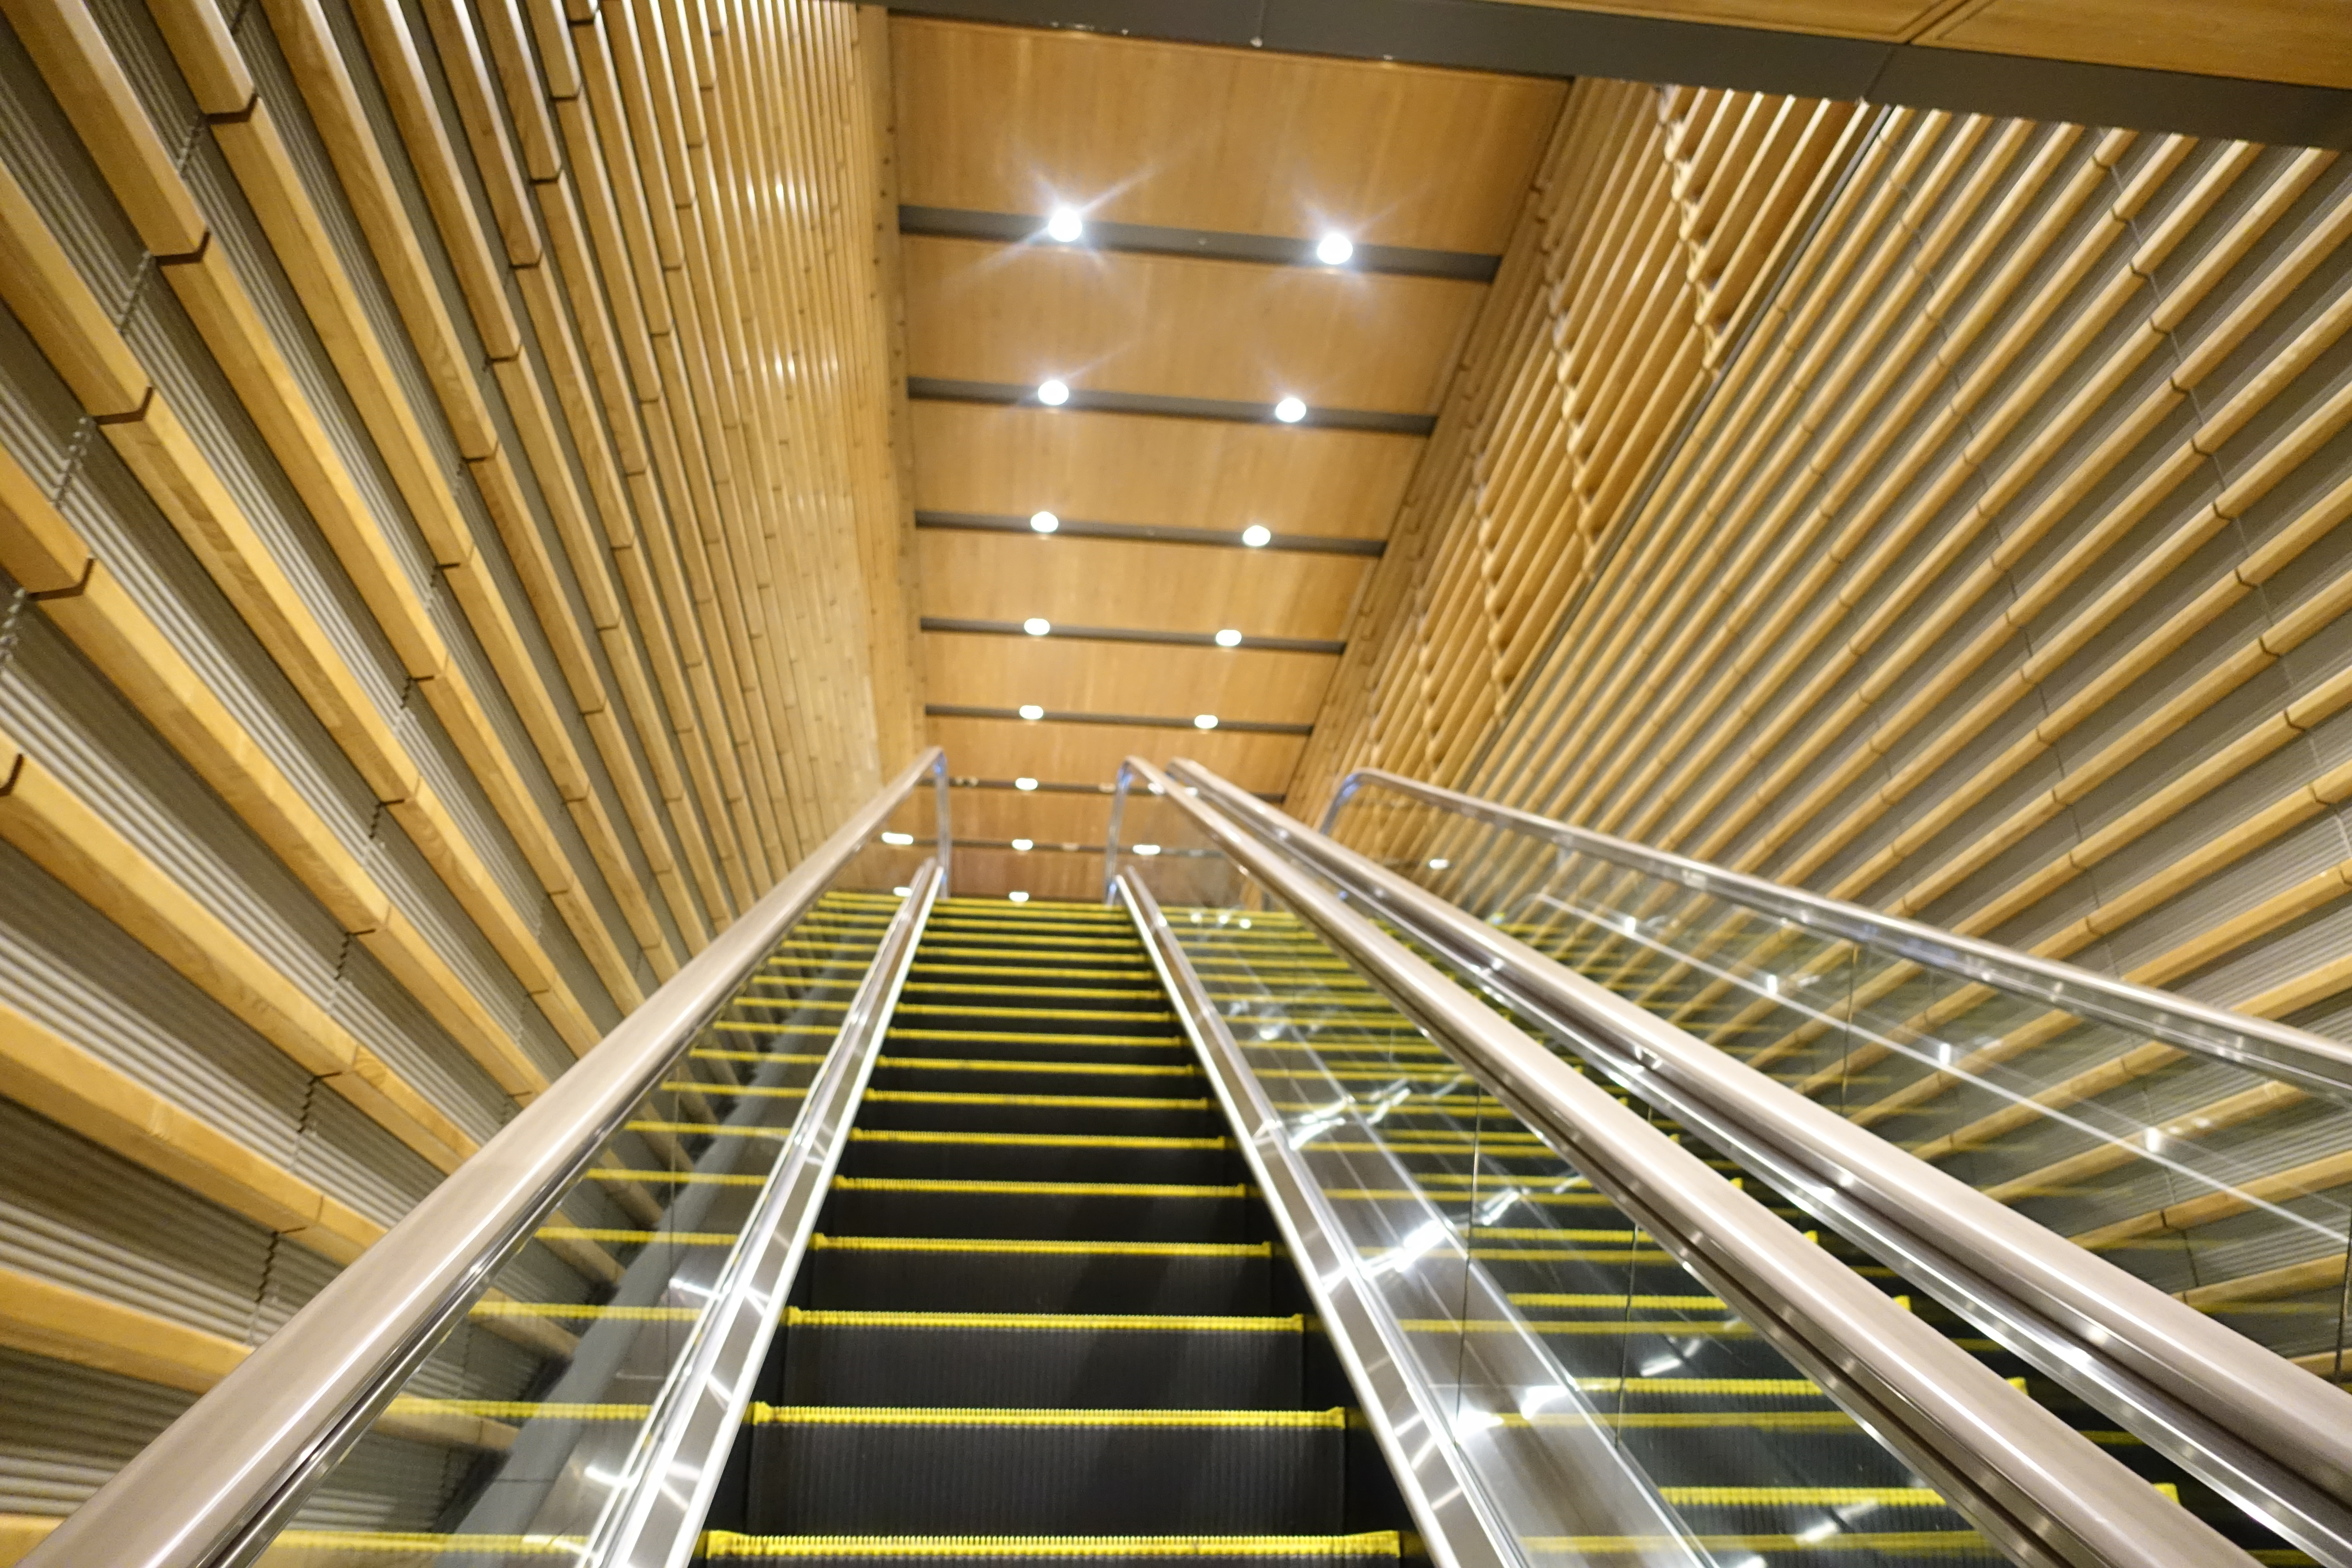 Escalator with wooden slat walls